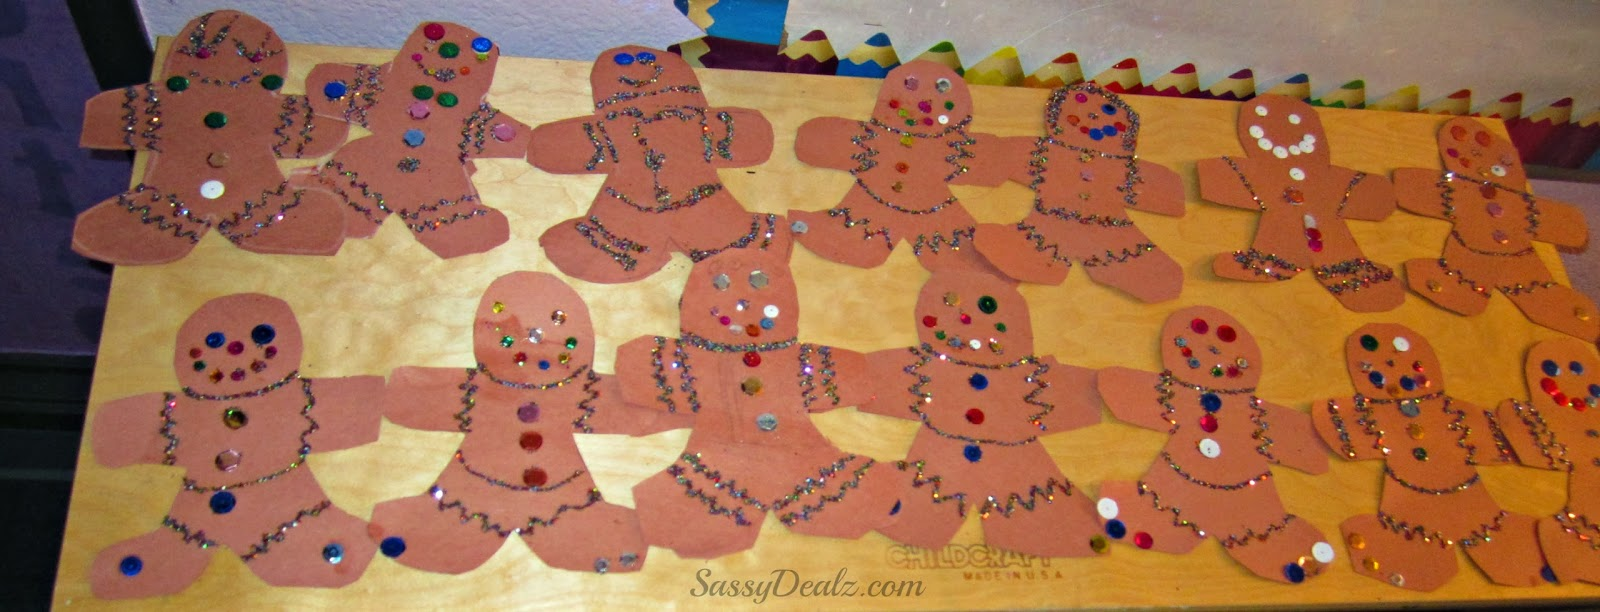 Gingerbread man christmas craft idea for kids crafty morning for Craft projects for guys